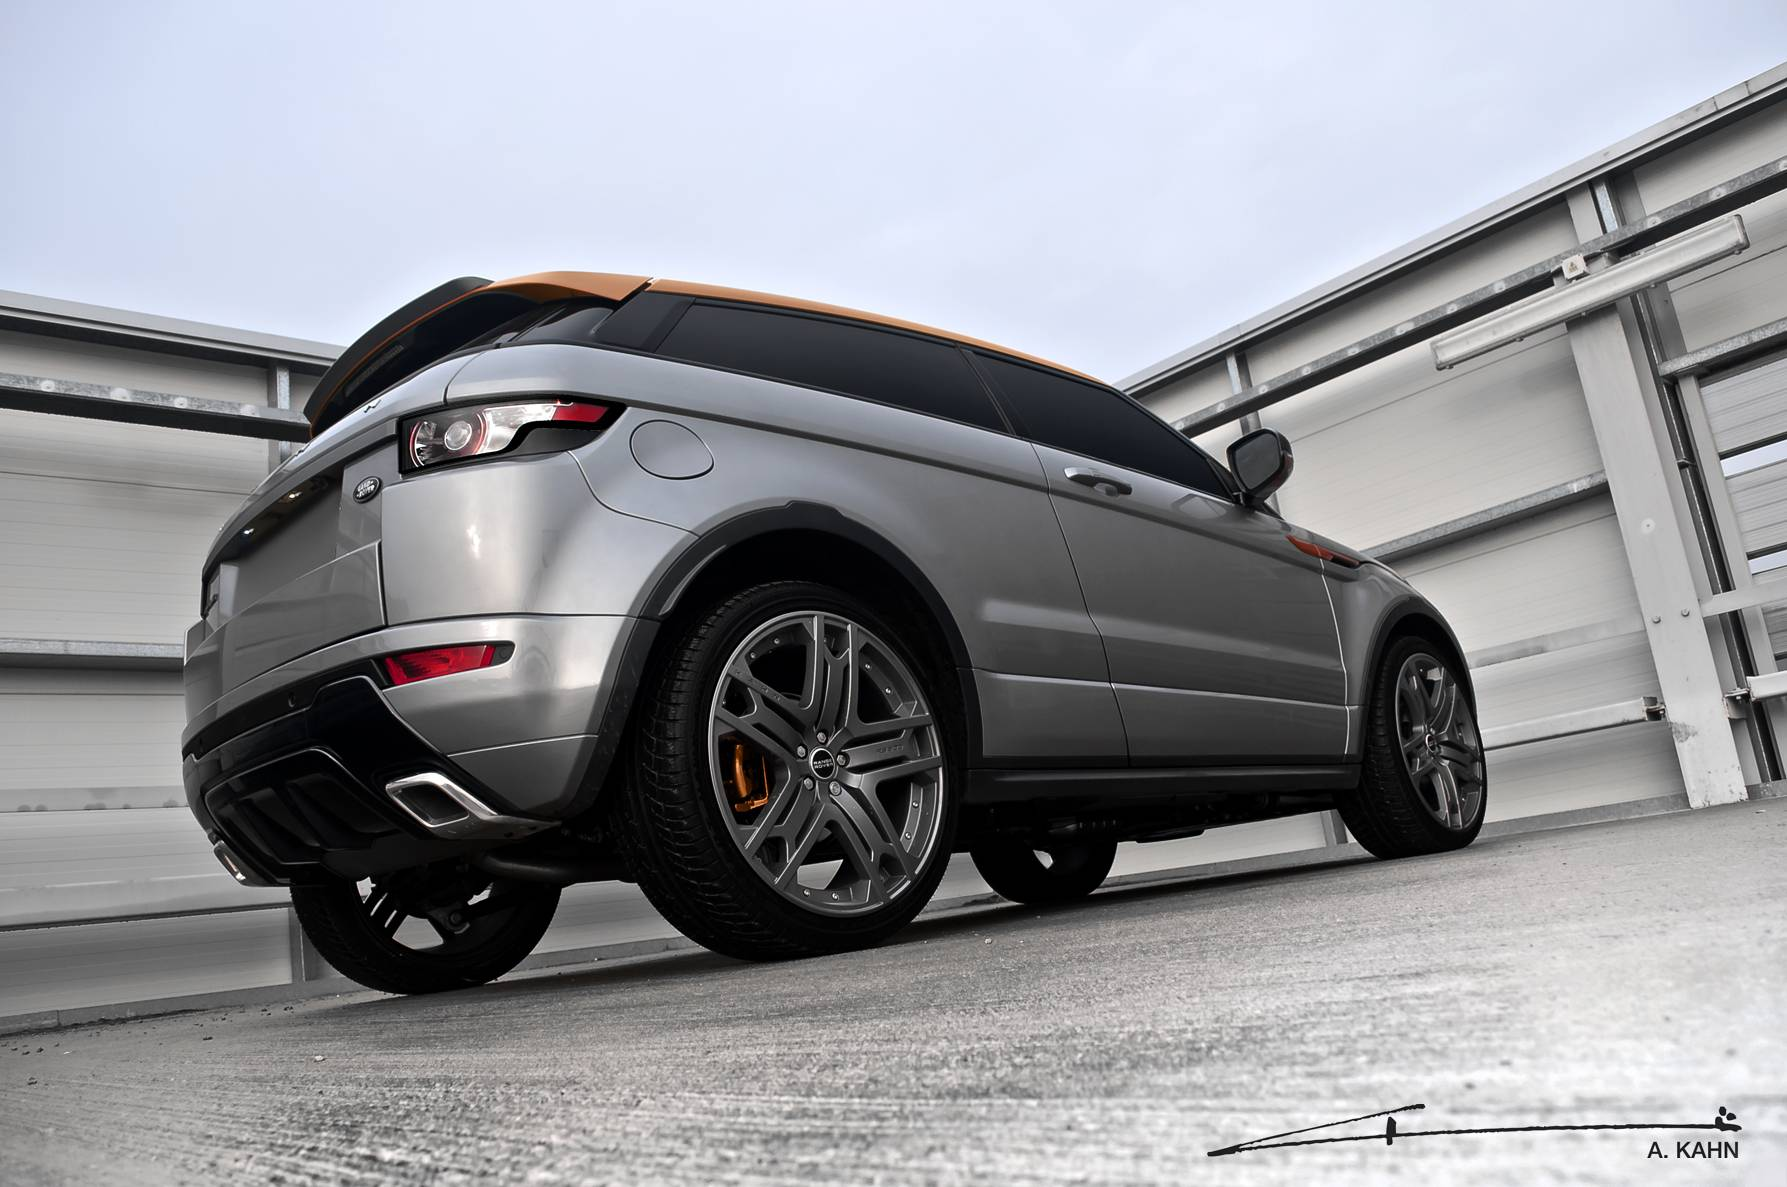 Grey and Orange Evoque (1)